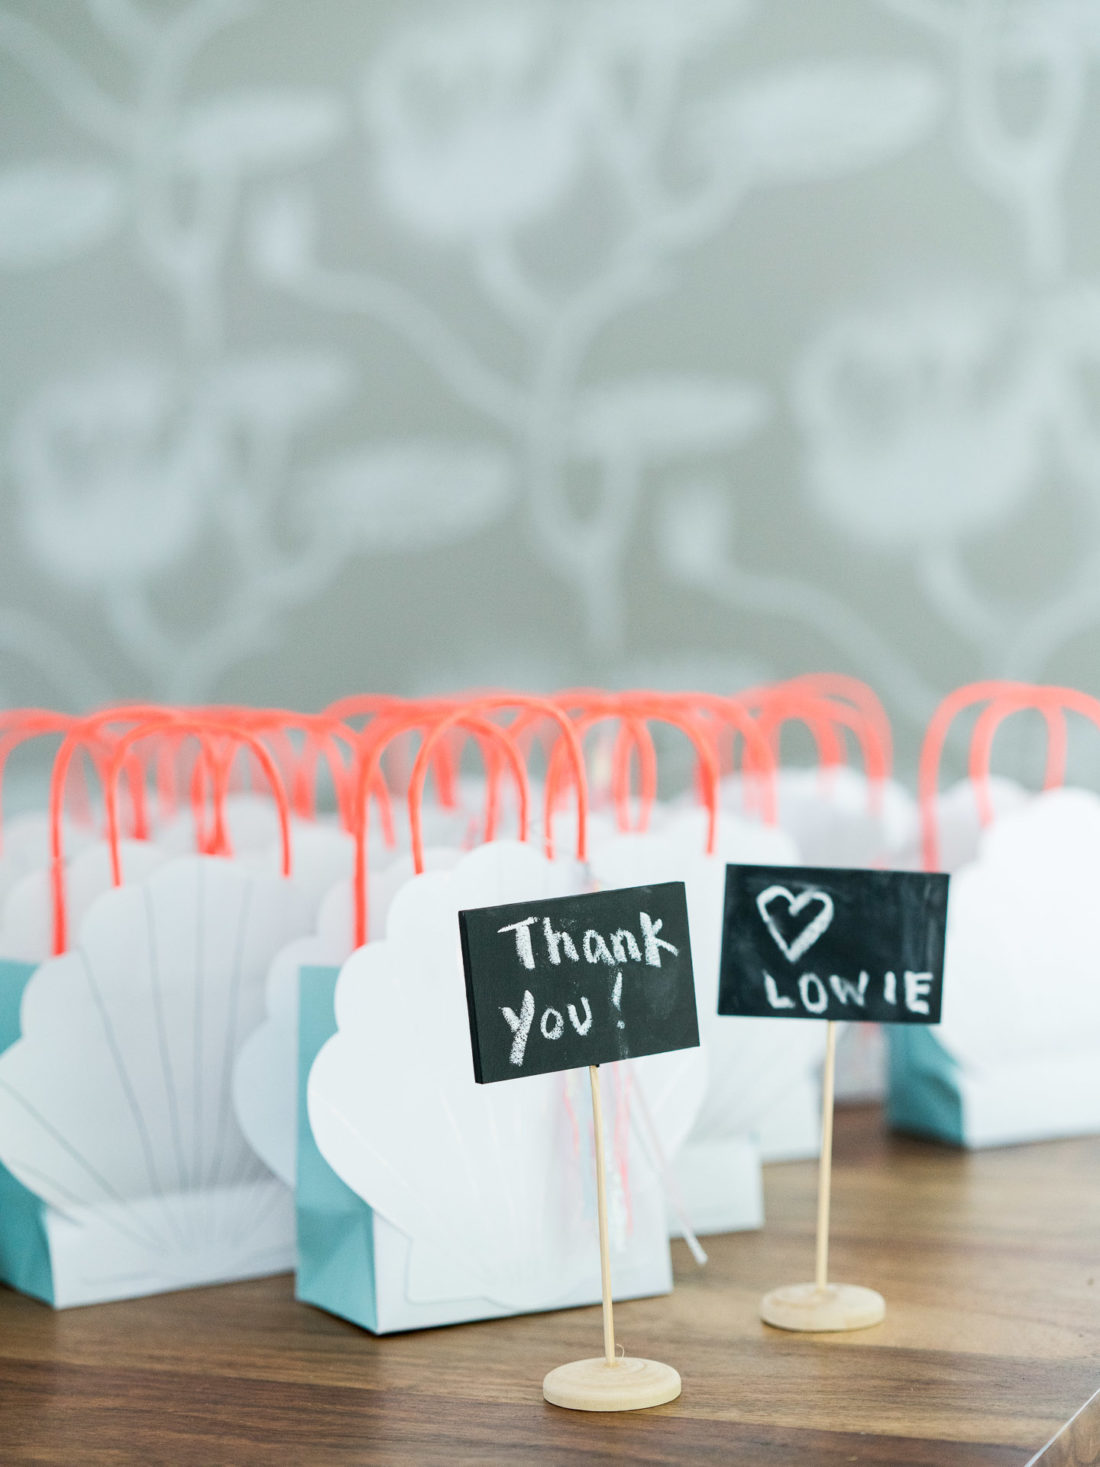 Goodie Bags at Marlowe Martino's third birthday party